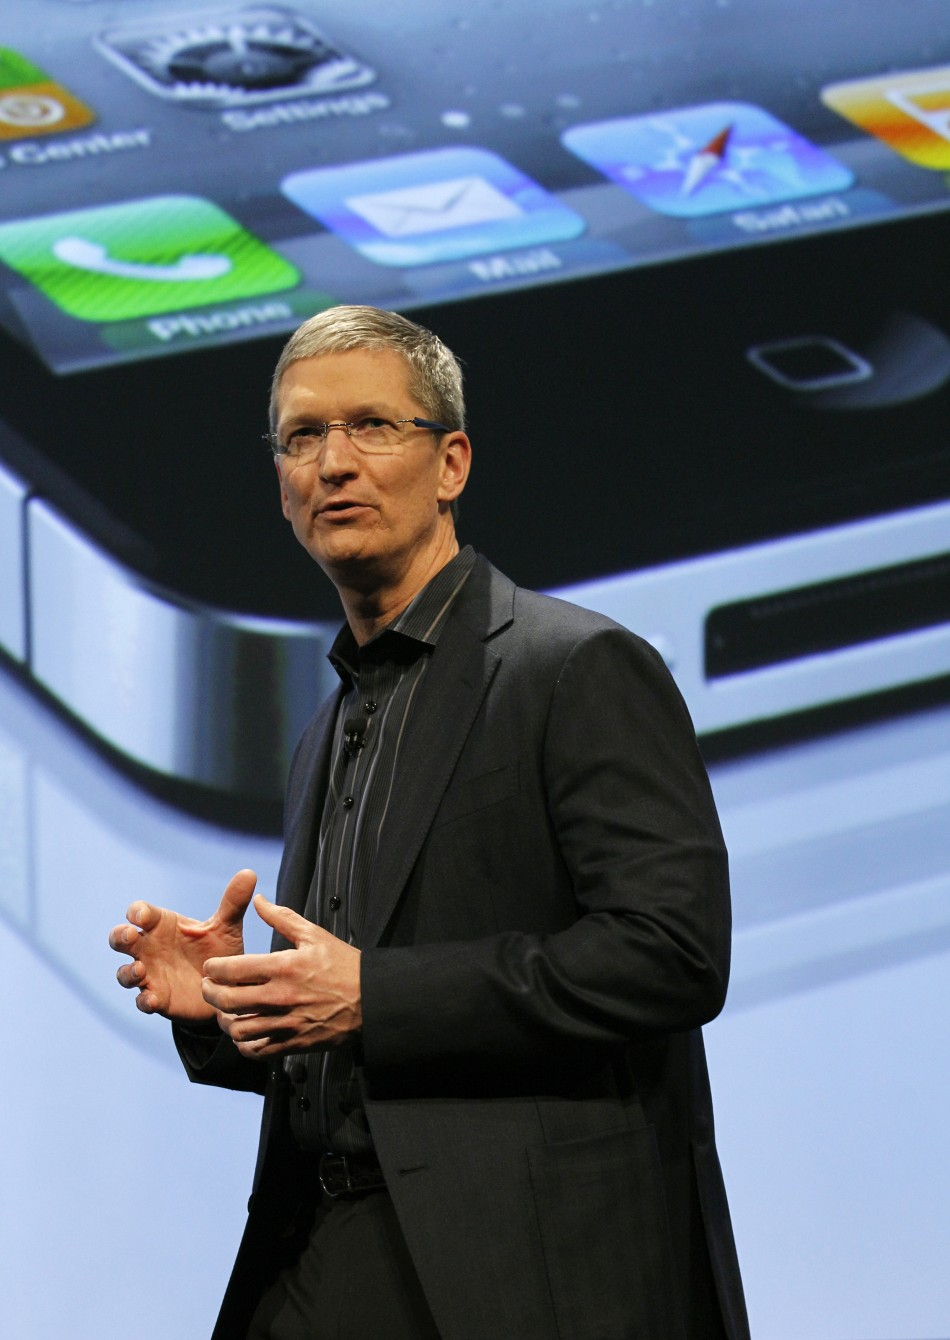 Tech Site Claims Apple iPhone 5 to be Unveiled 4 October